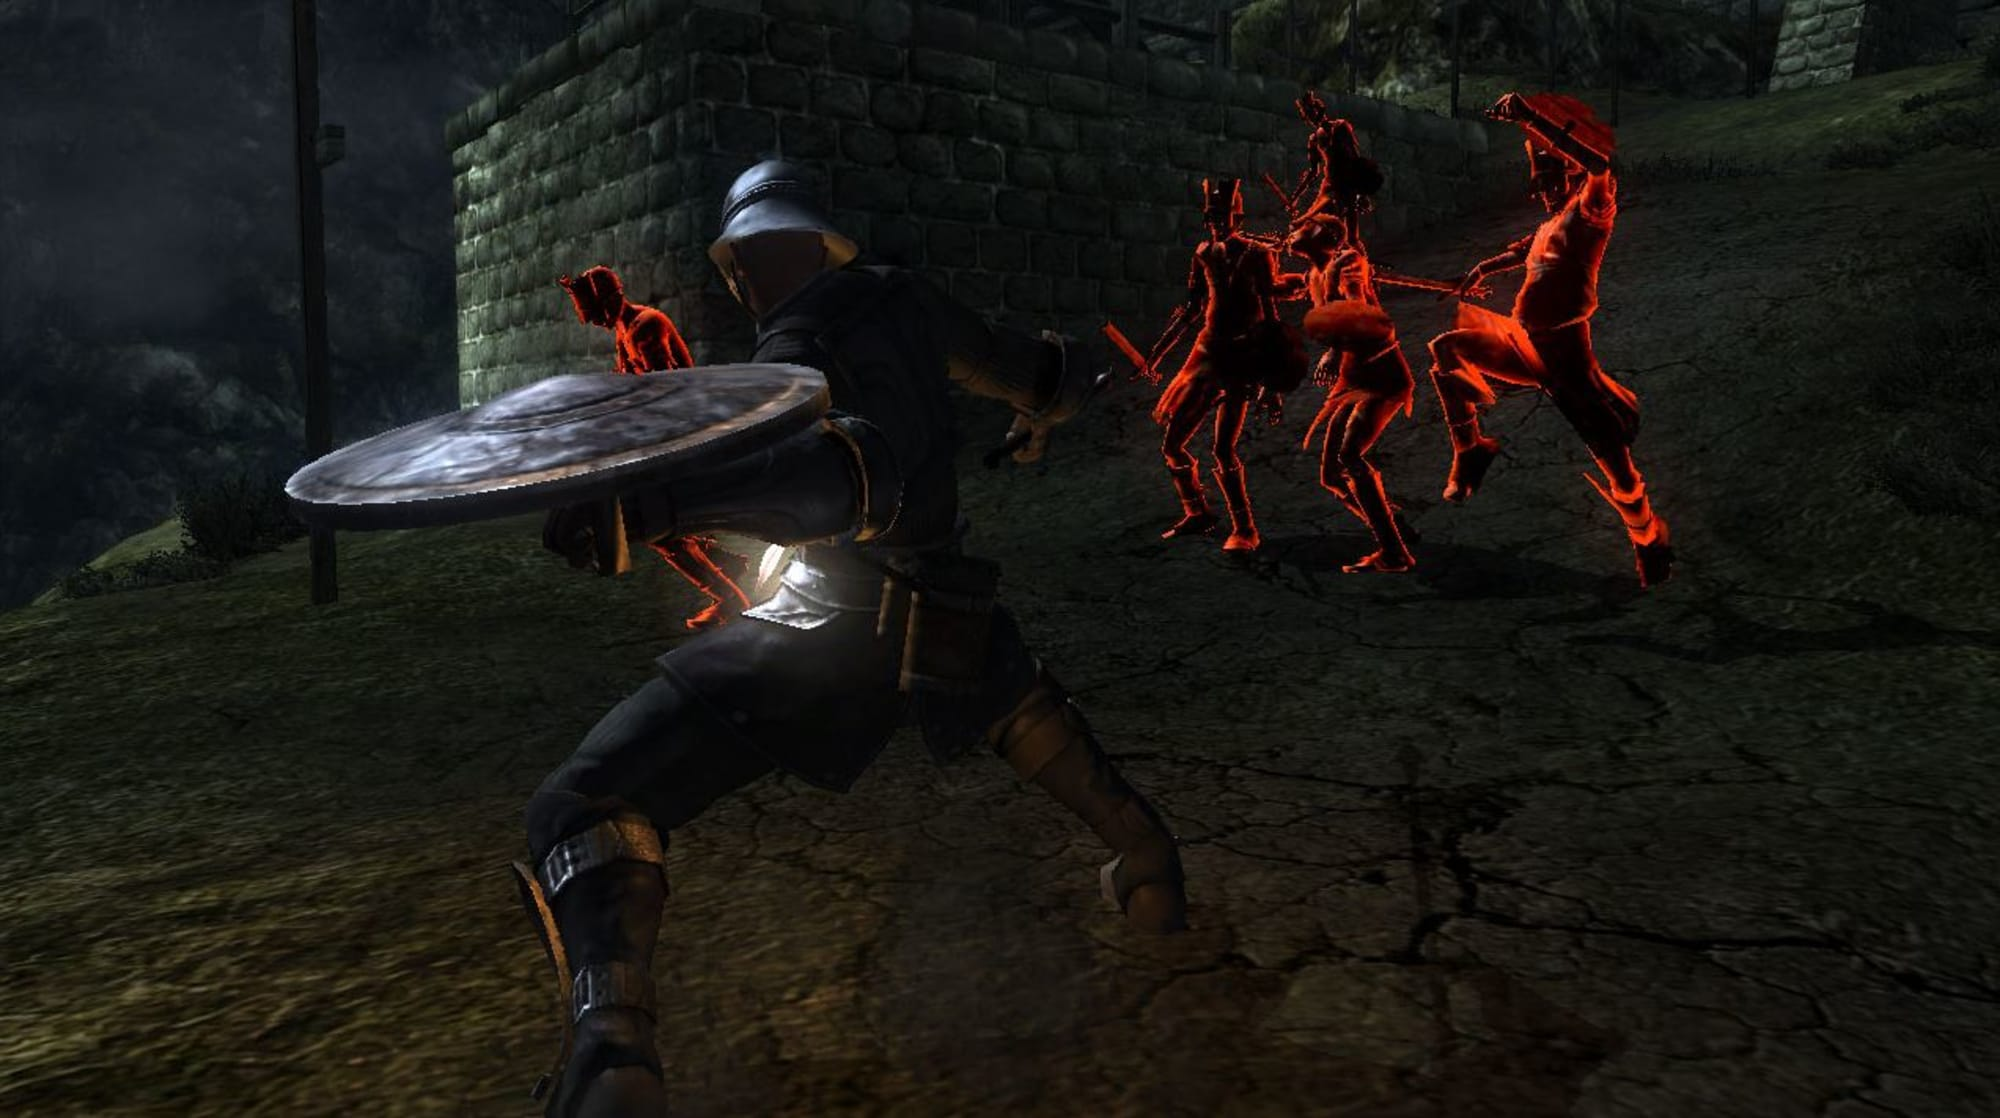 Demon's Souls: 3 things to look forward to with the PS5 Remake